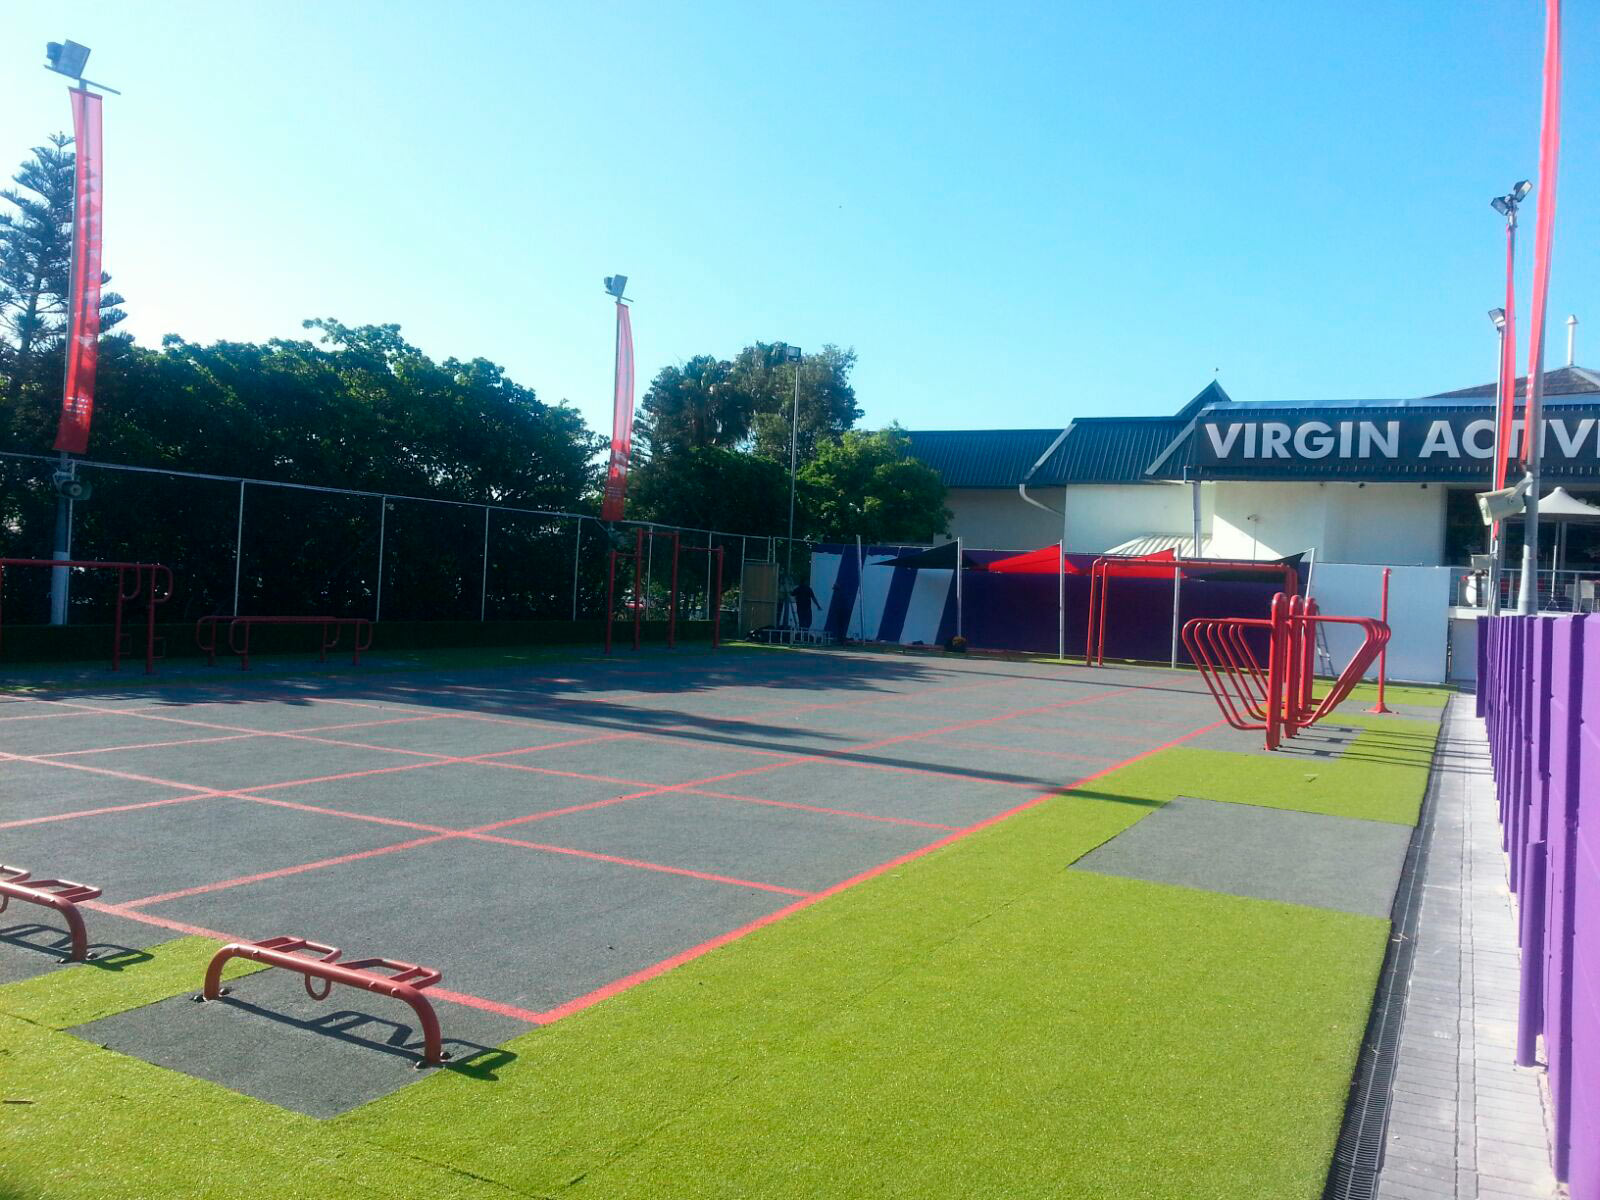 Virgin Active - Seapoint - Synthetic Grass